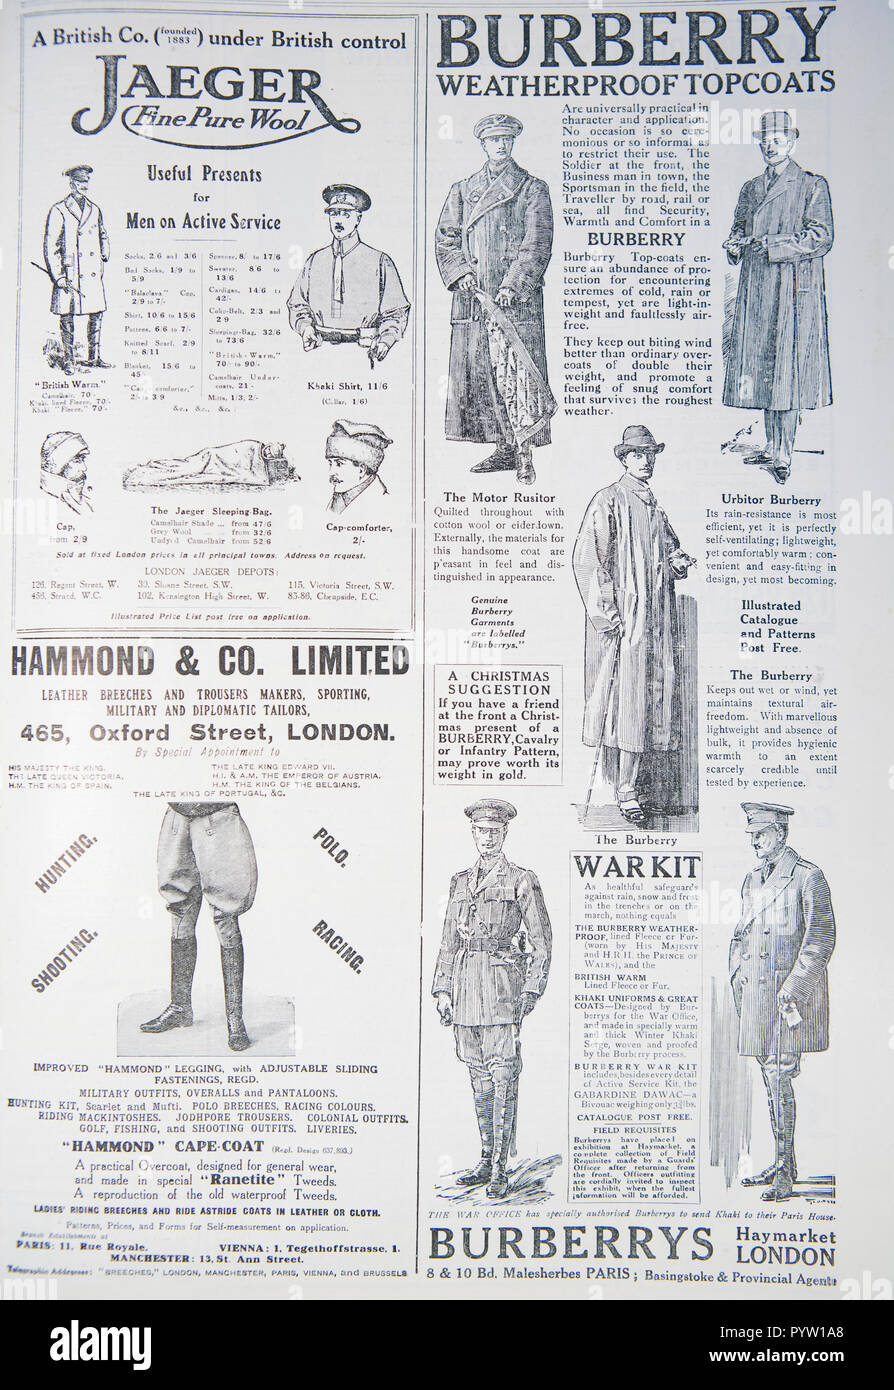 First World War Adverts Stock Photos Trench Diagram Ww1 Old Advert For Clothing During The From A British Magazine